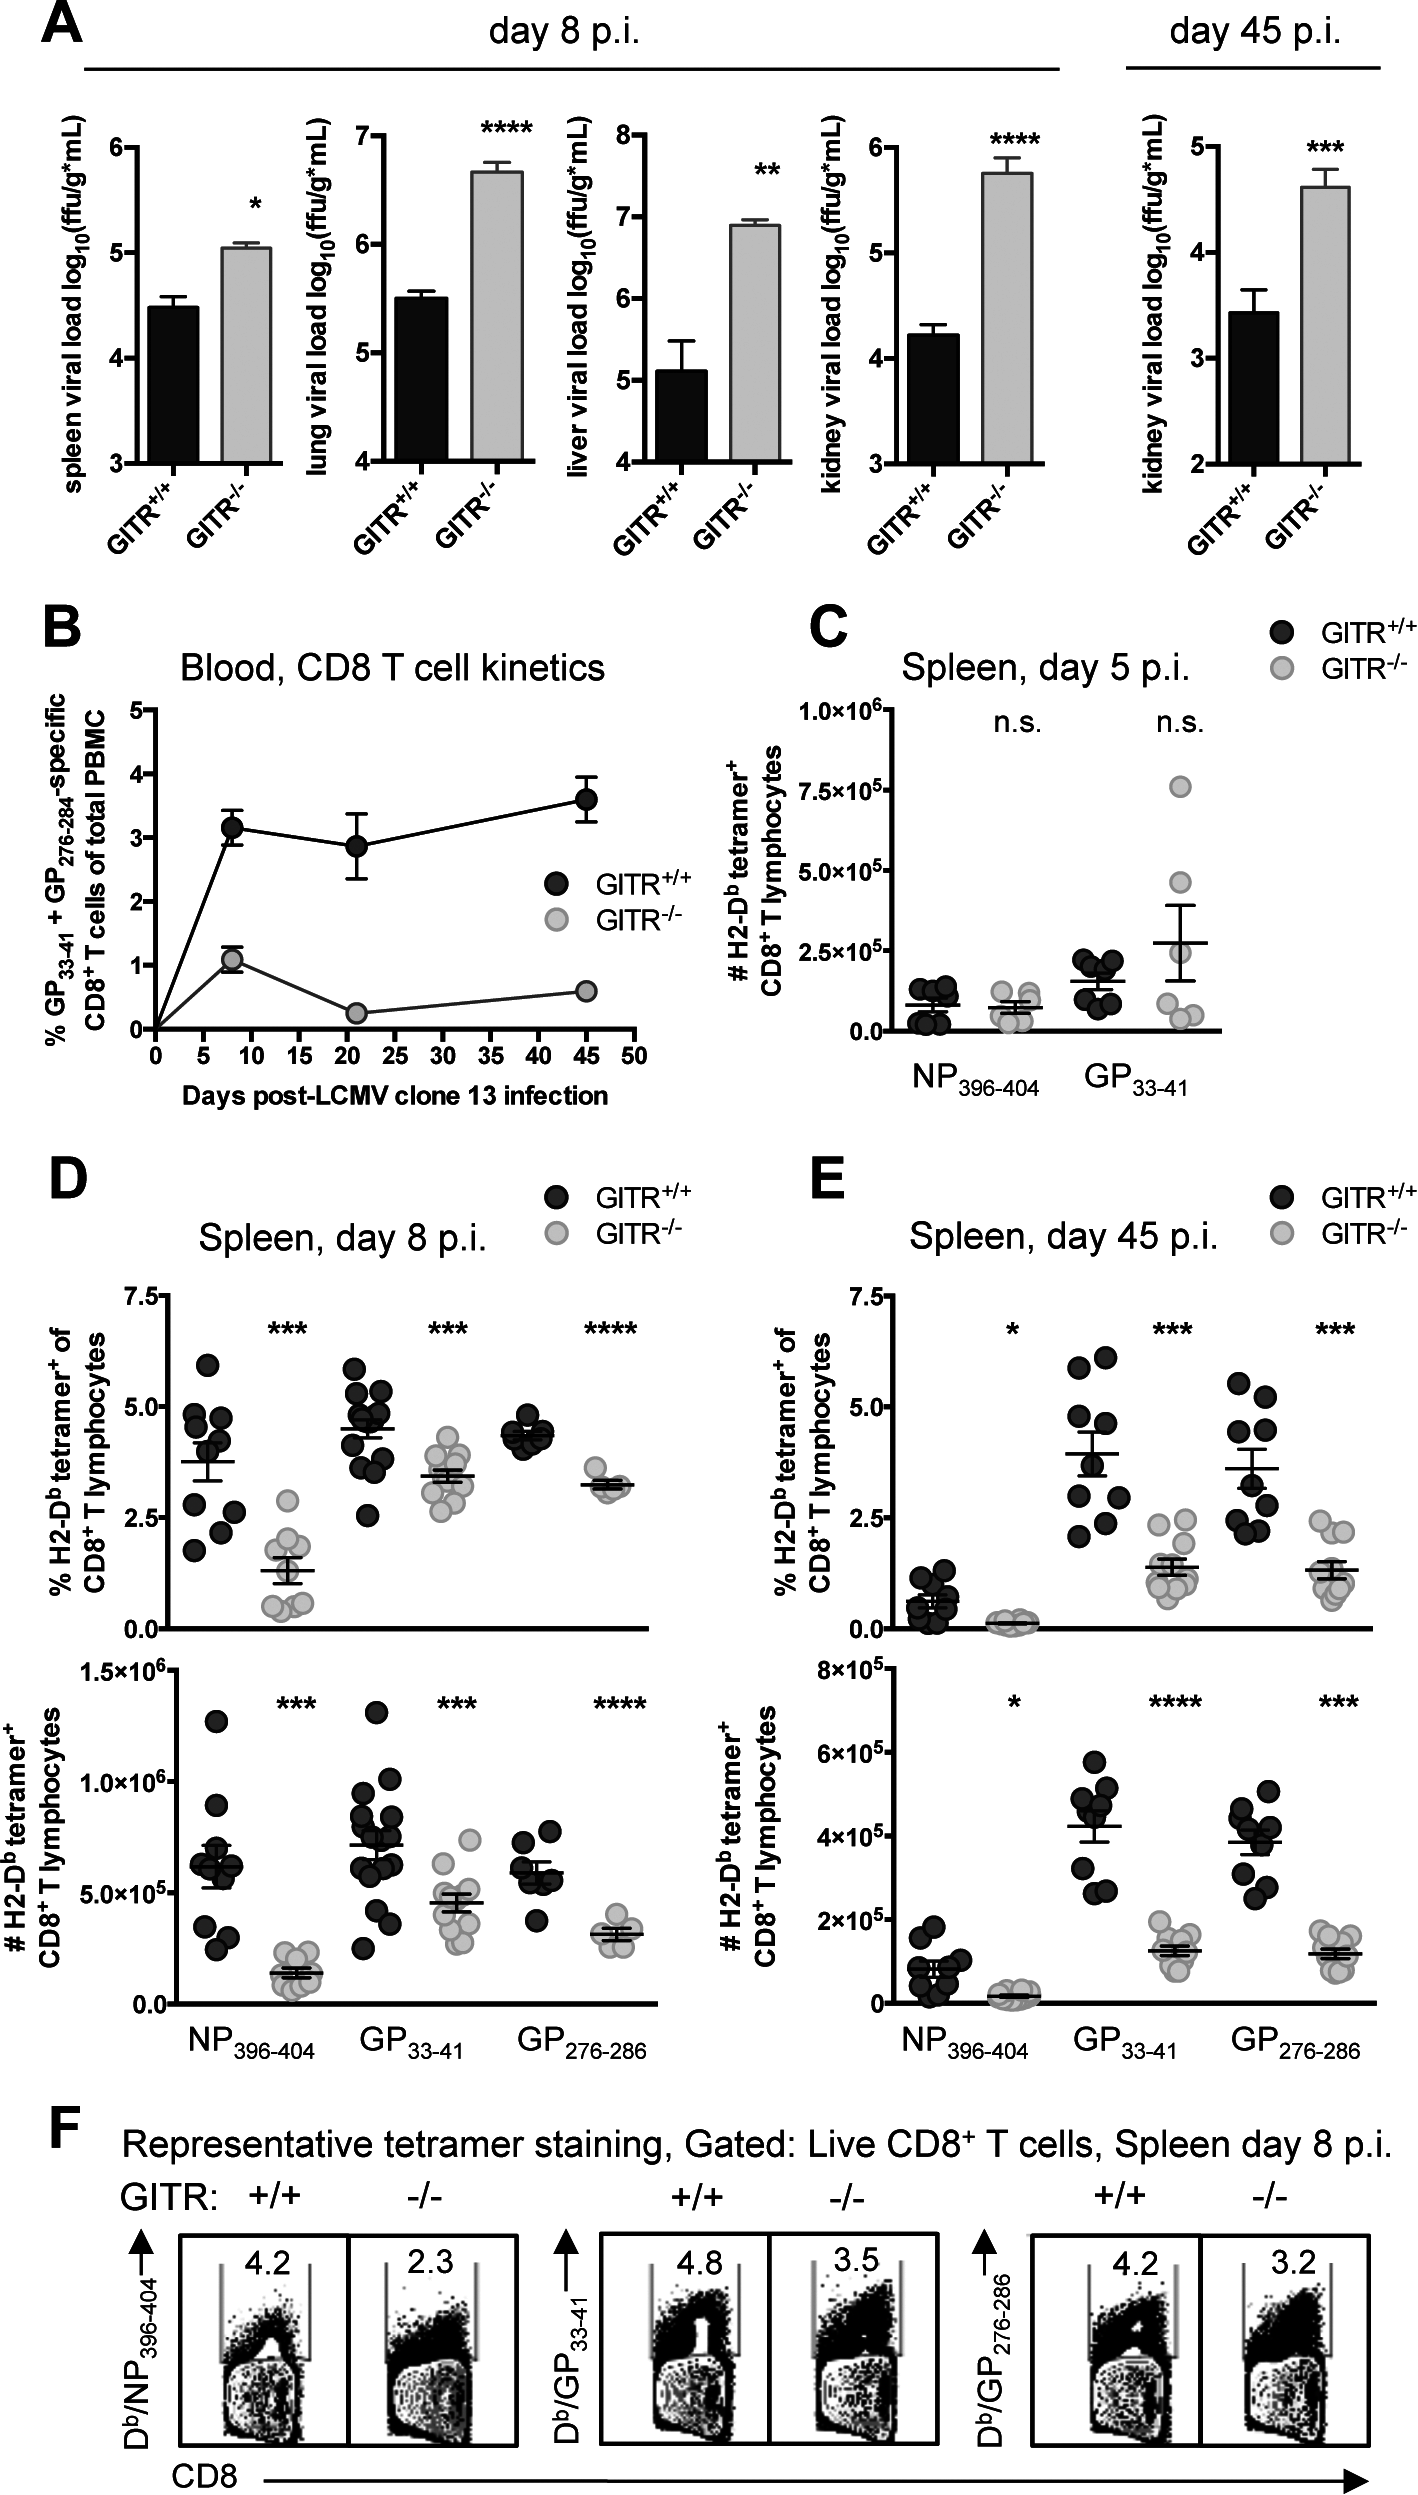 GITR<sup>-/-</sup> mice have impaired CD8 T cell responses and compromised control of chronic LCMV cl 13 infection.